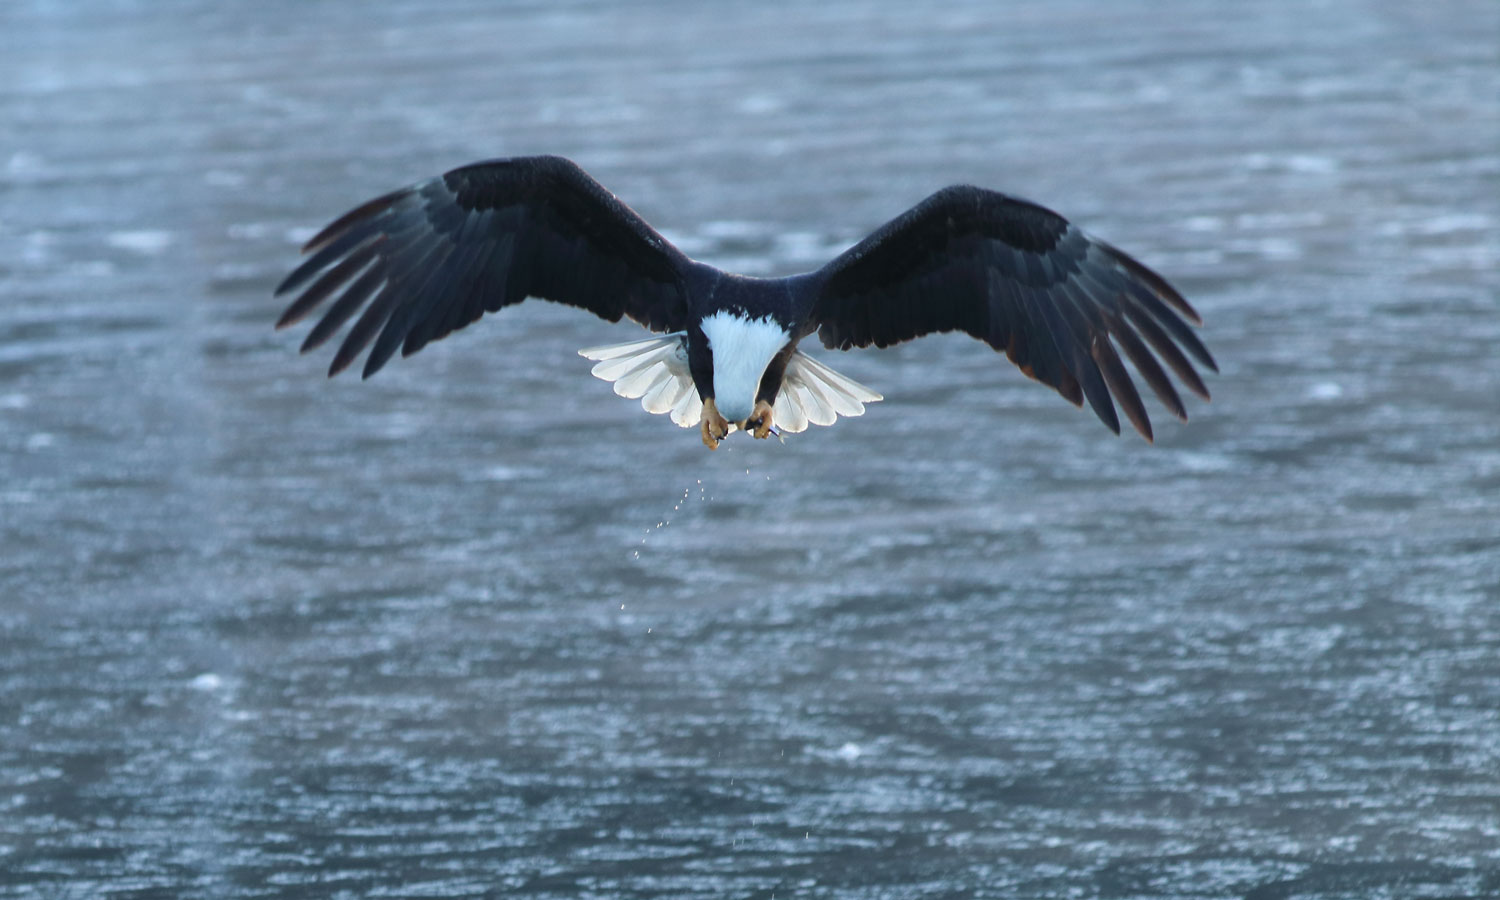 A bald eagle ducks it's head to eat the fish that it just caught.